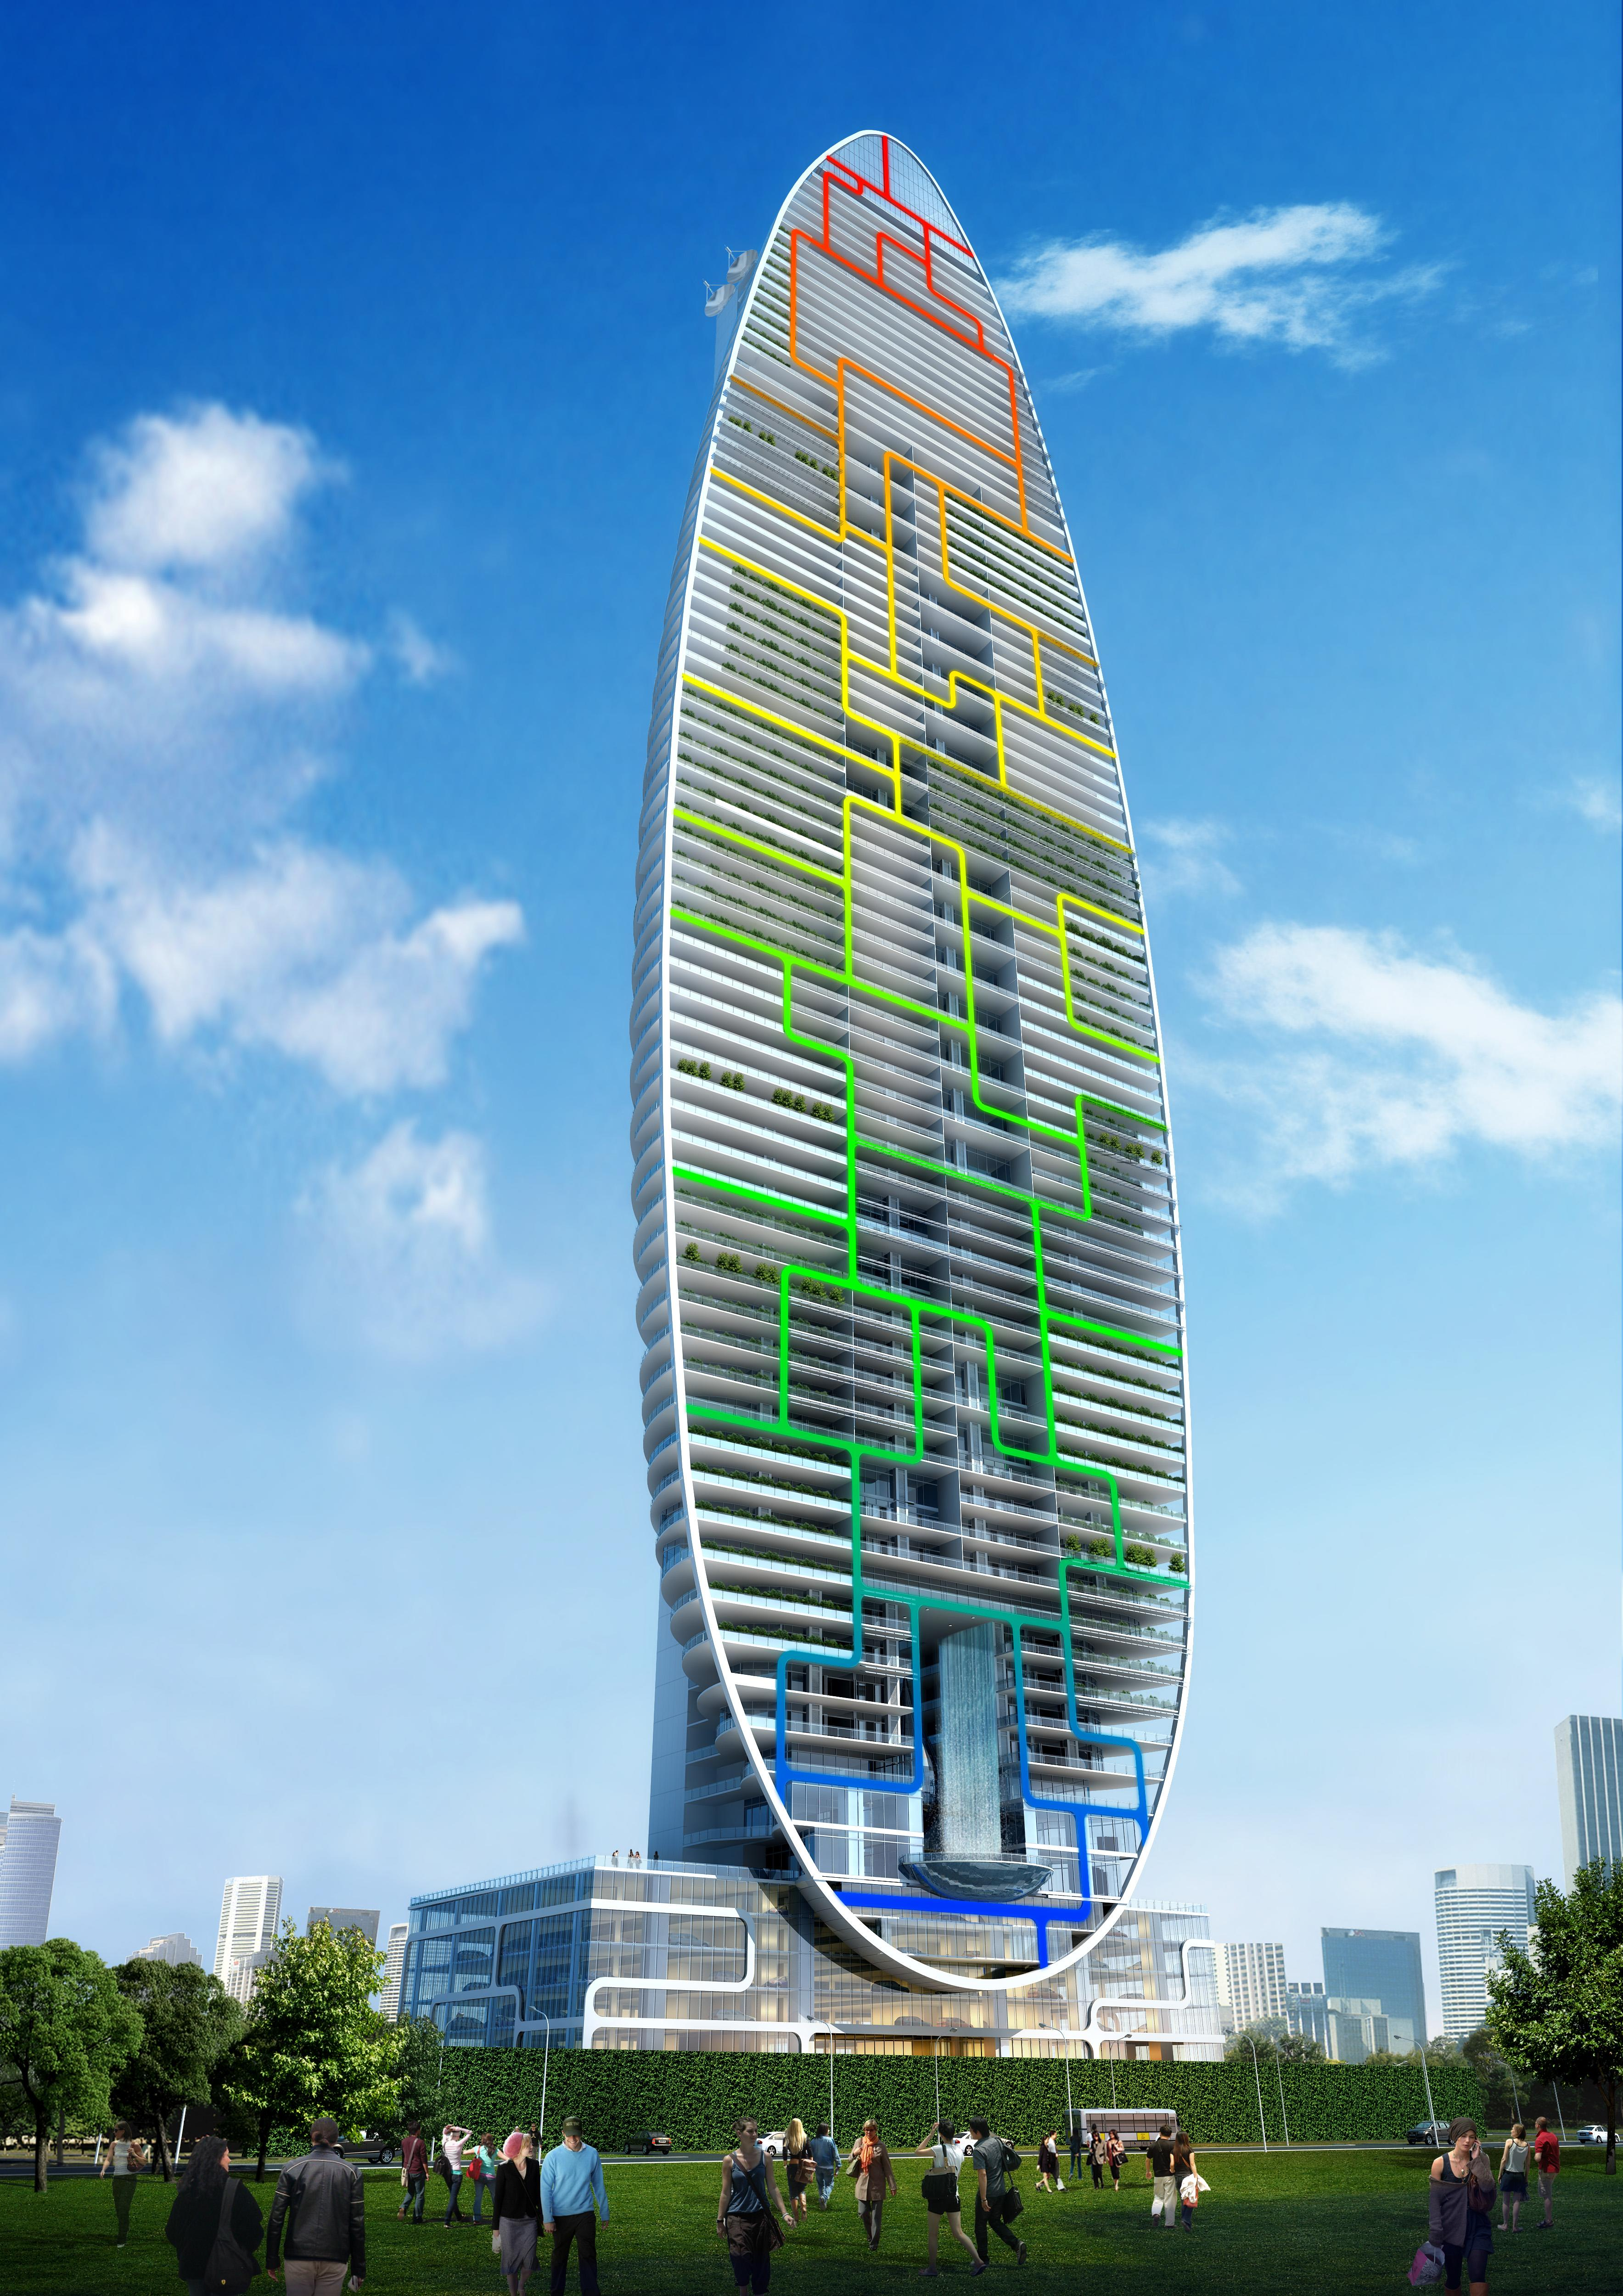 Water Building Material : Water droplet shaped building in india